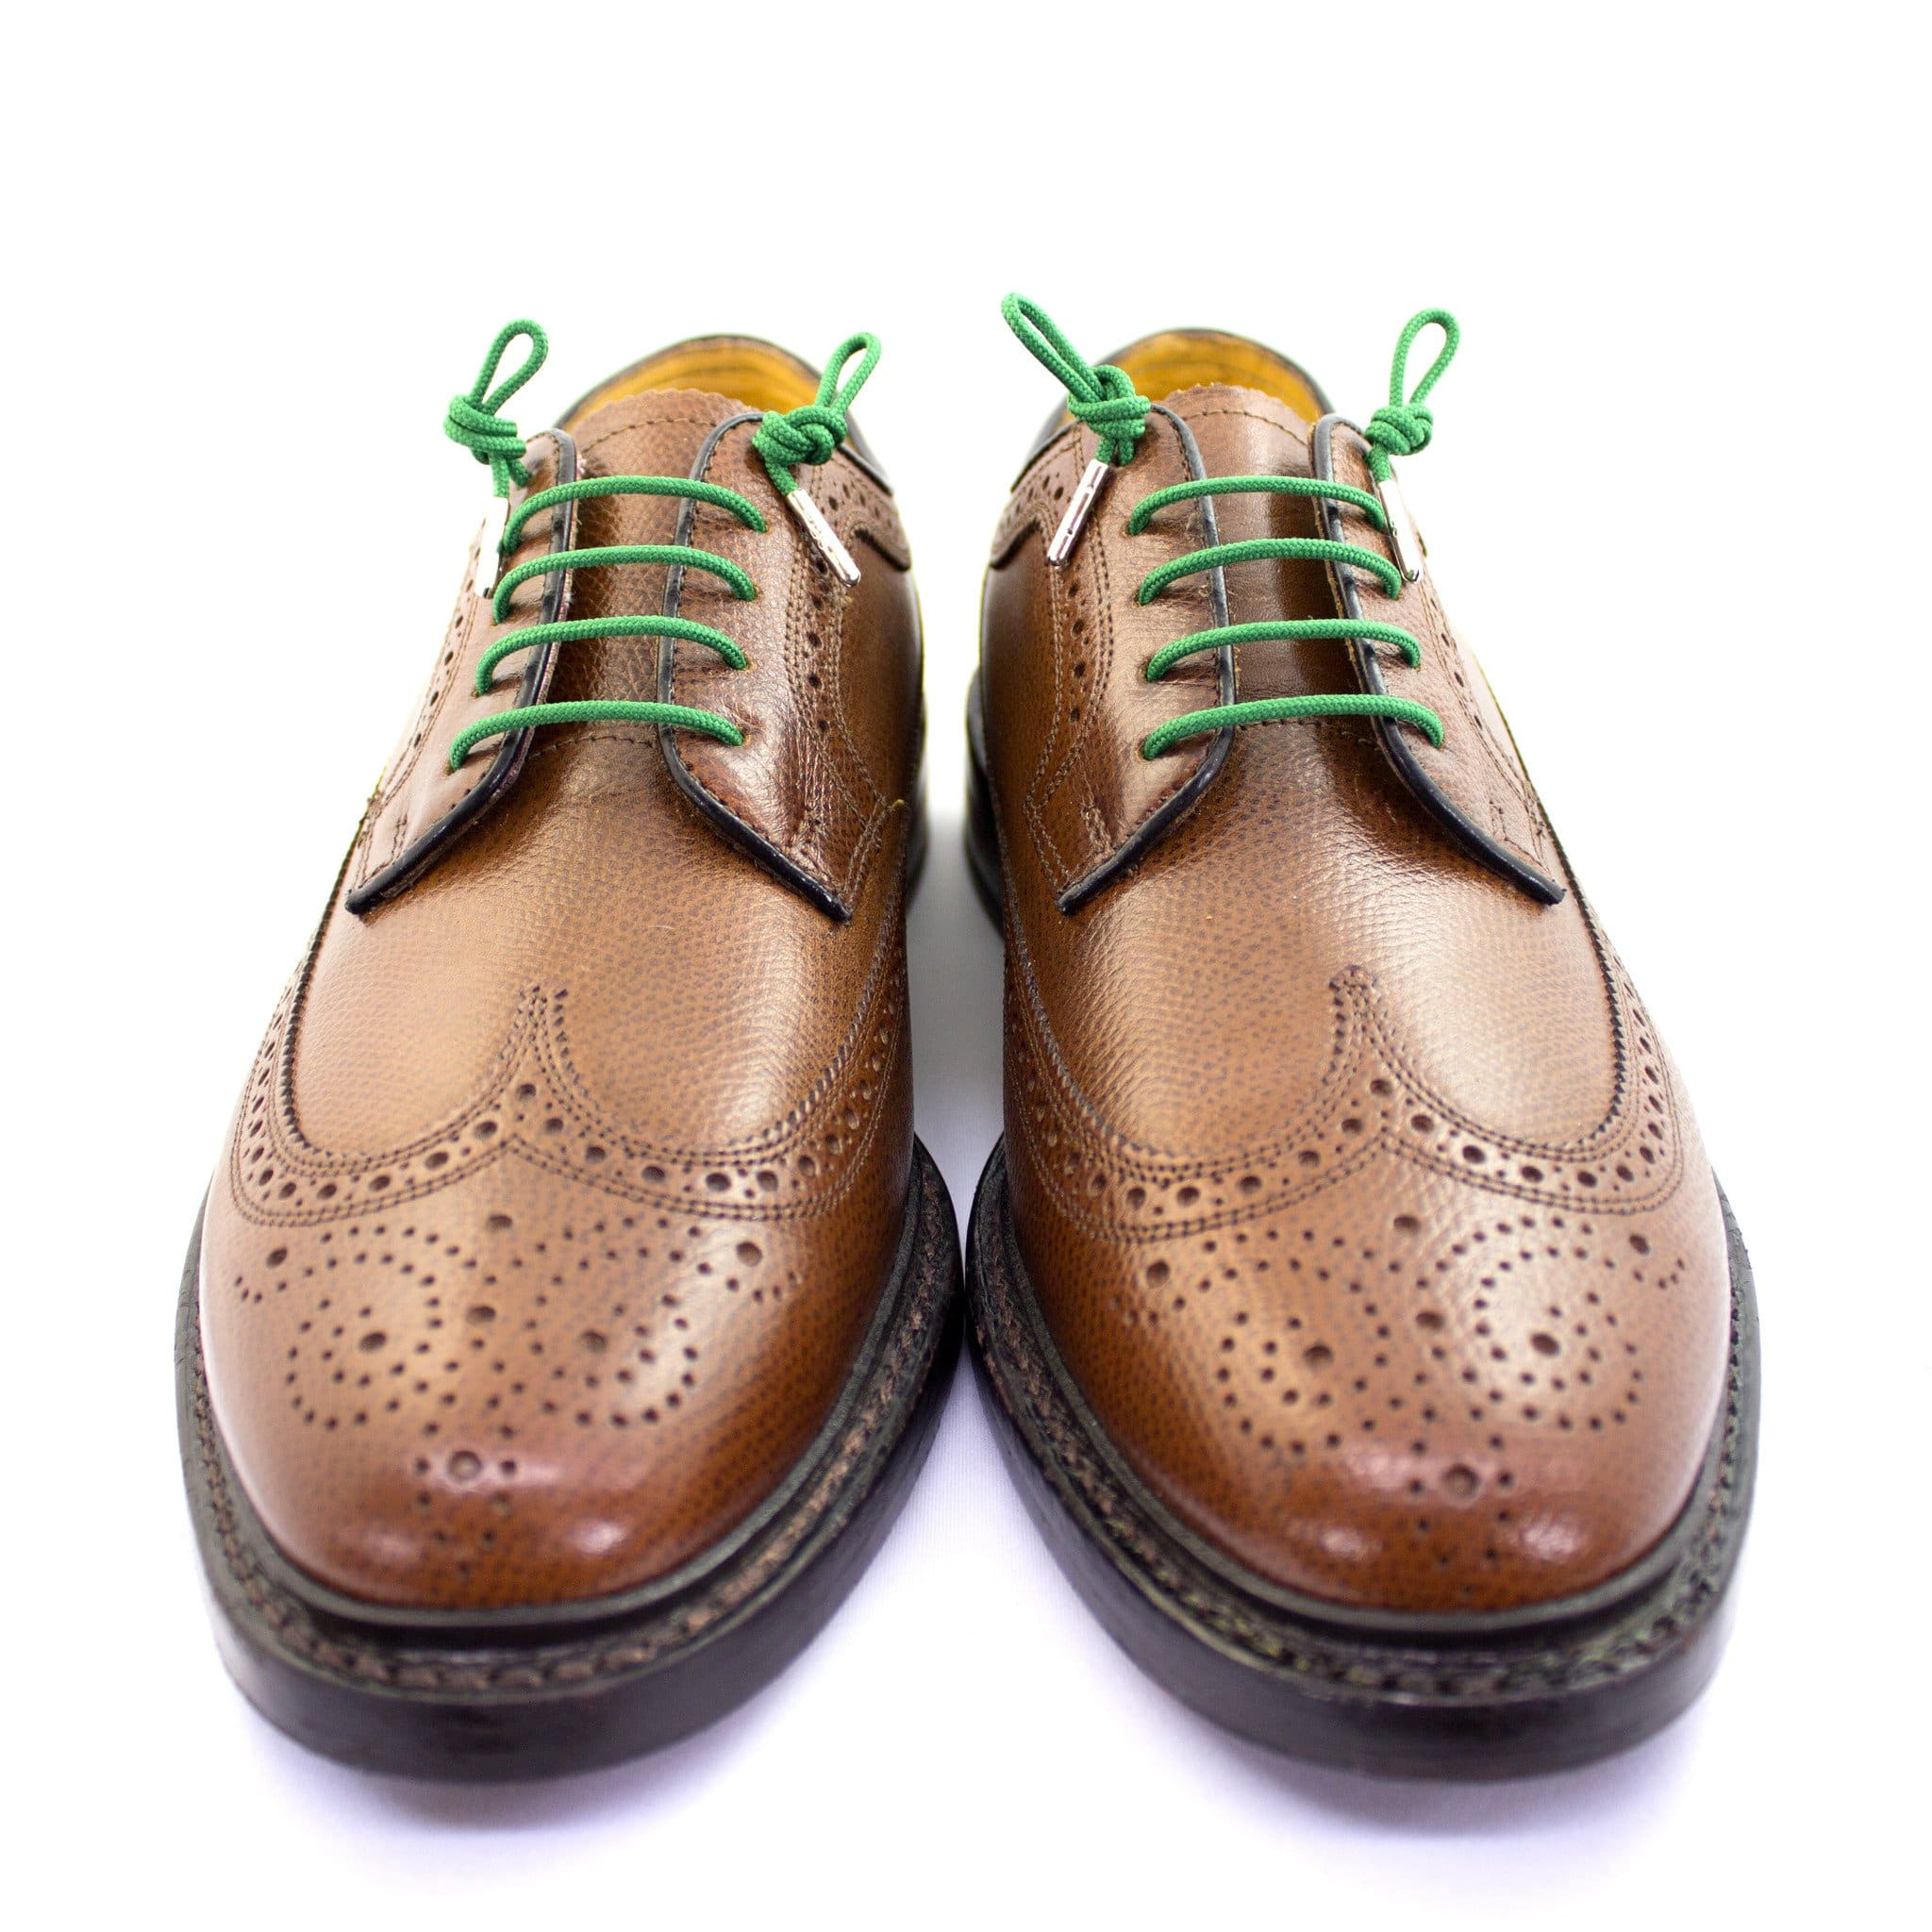 "Emerald green laces for dress shoes, Length: 32""/81cm-Stolen Riches"